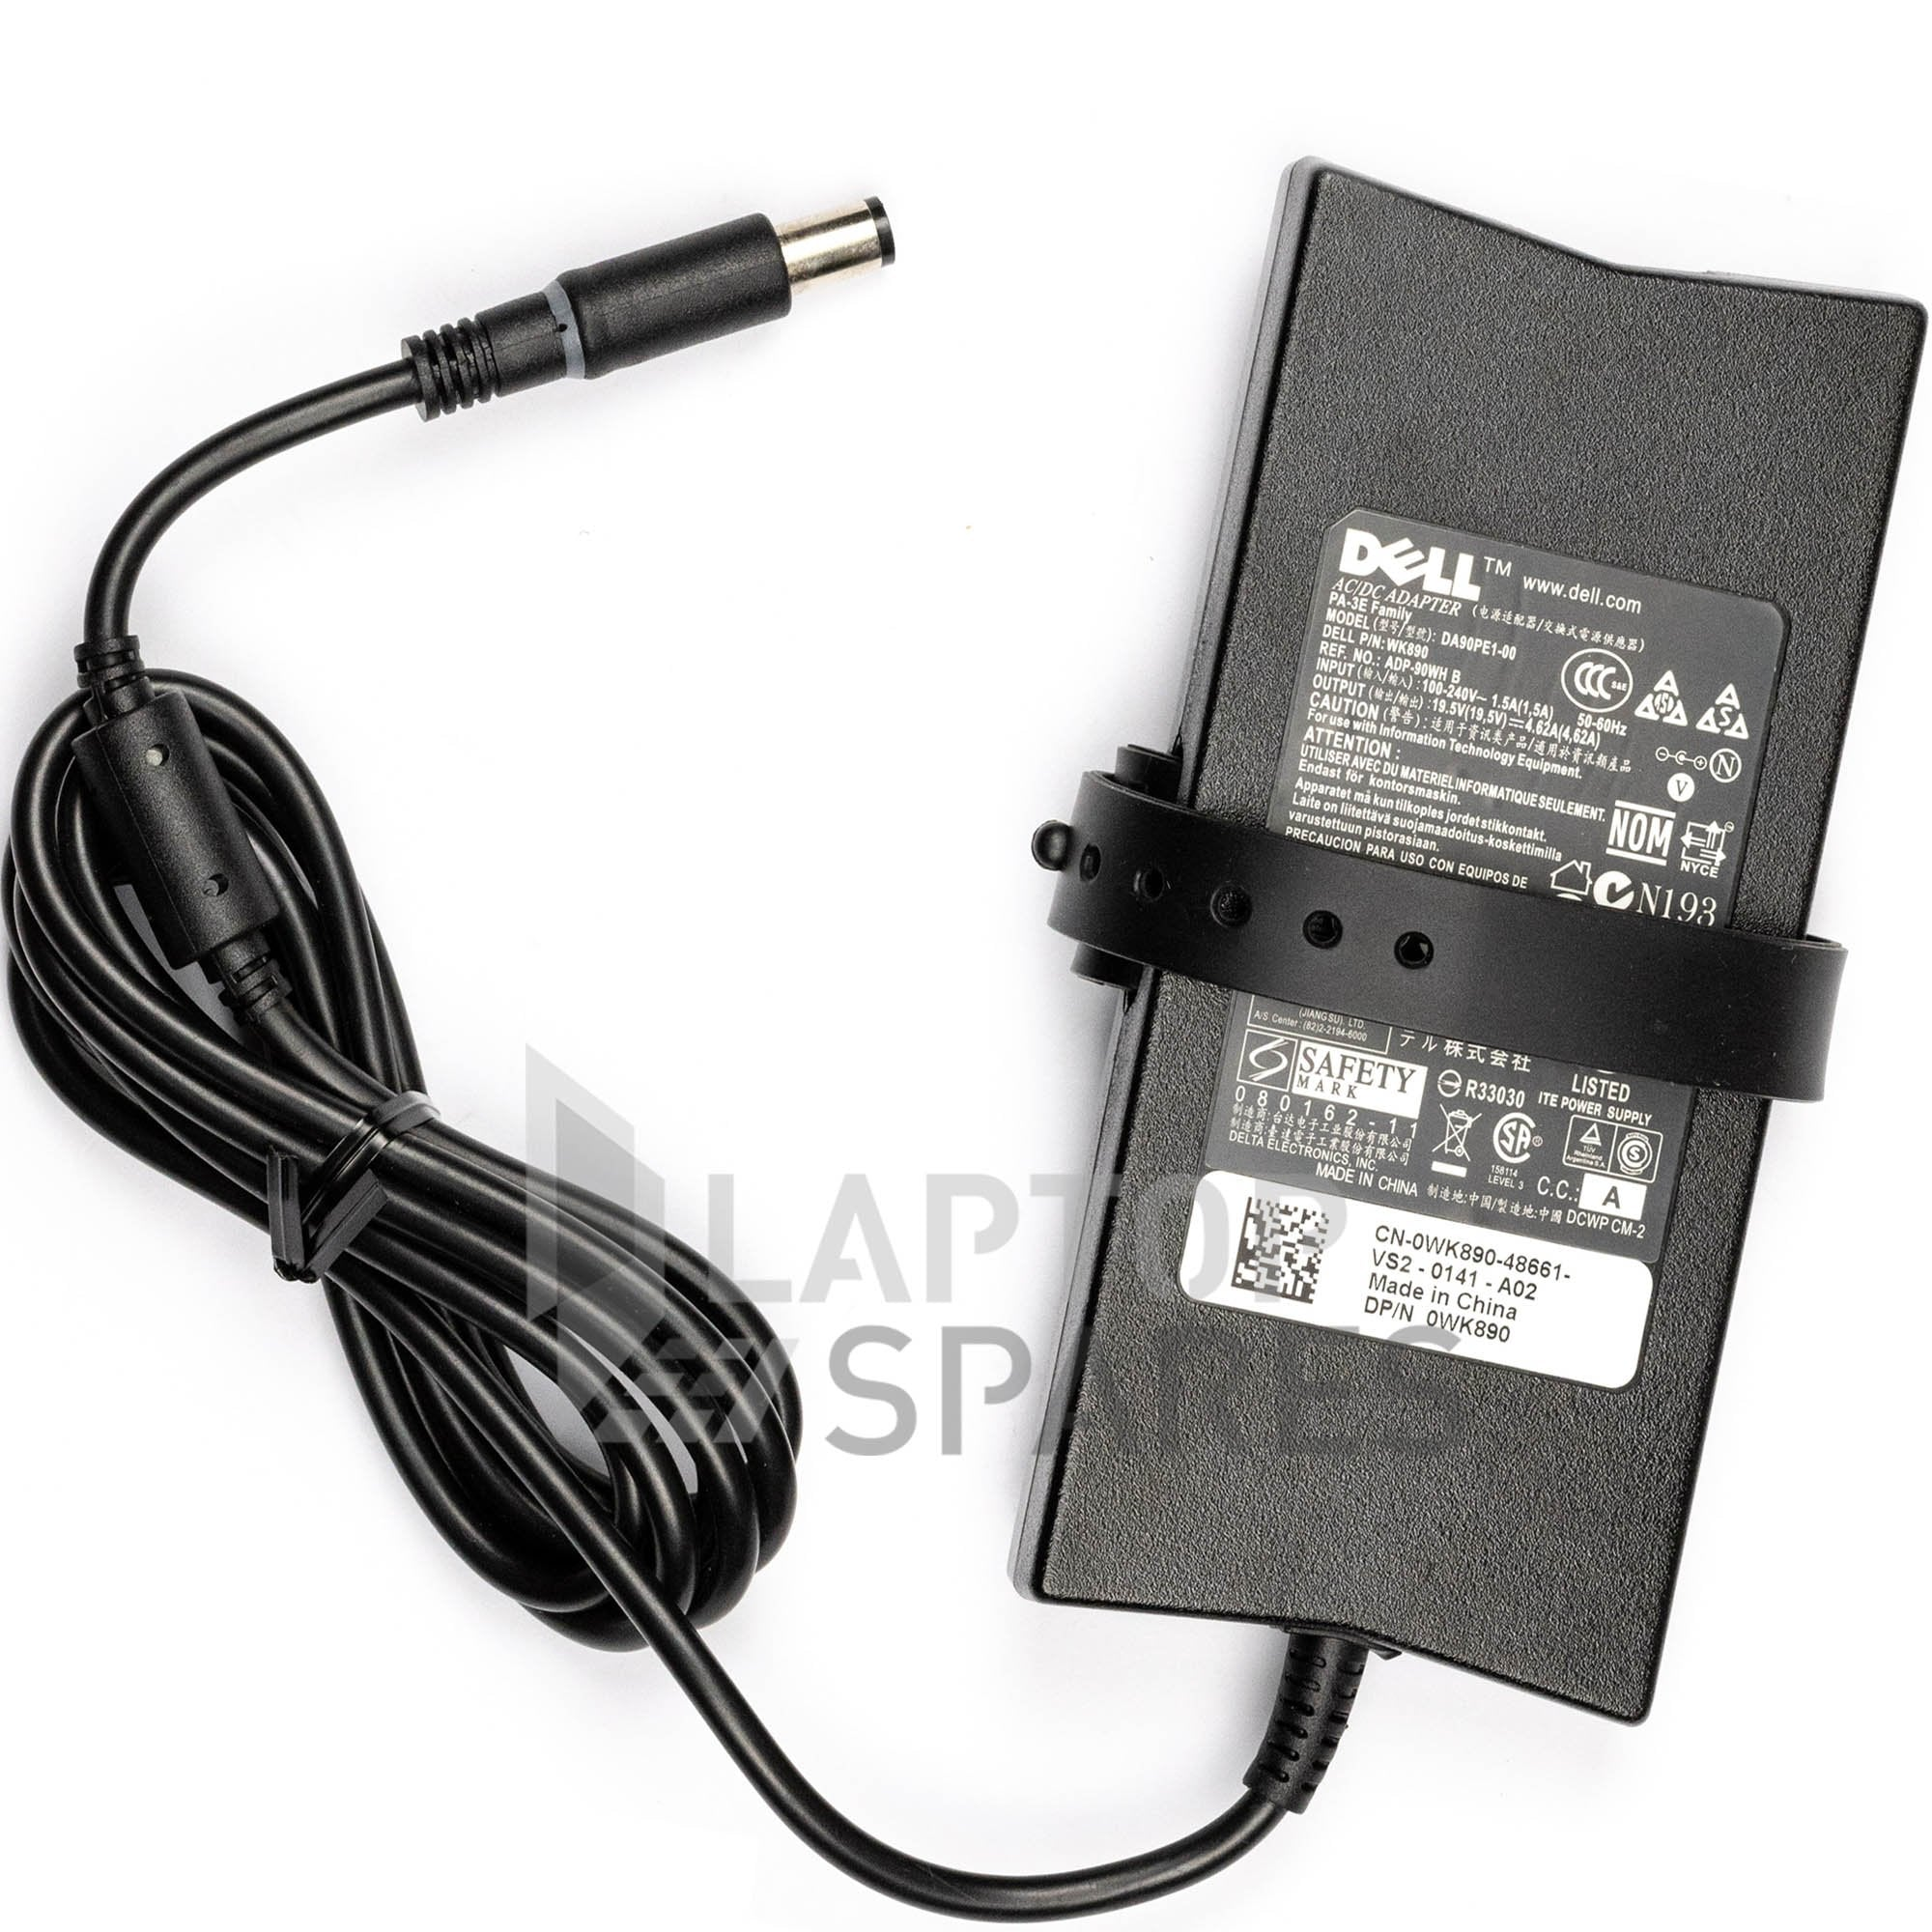 Dell Inspiron 15R Turbo P25F P25F001 7520 N7520 Laptop Slim AC Adapter Charger